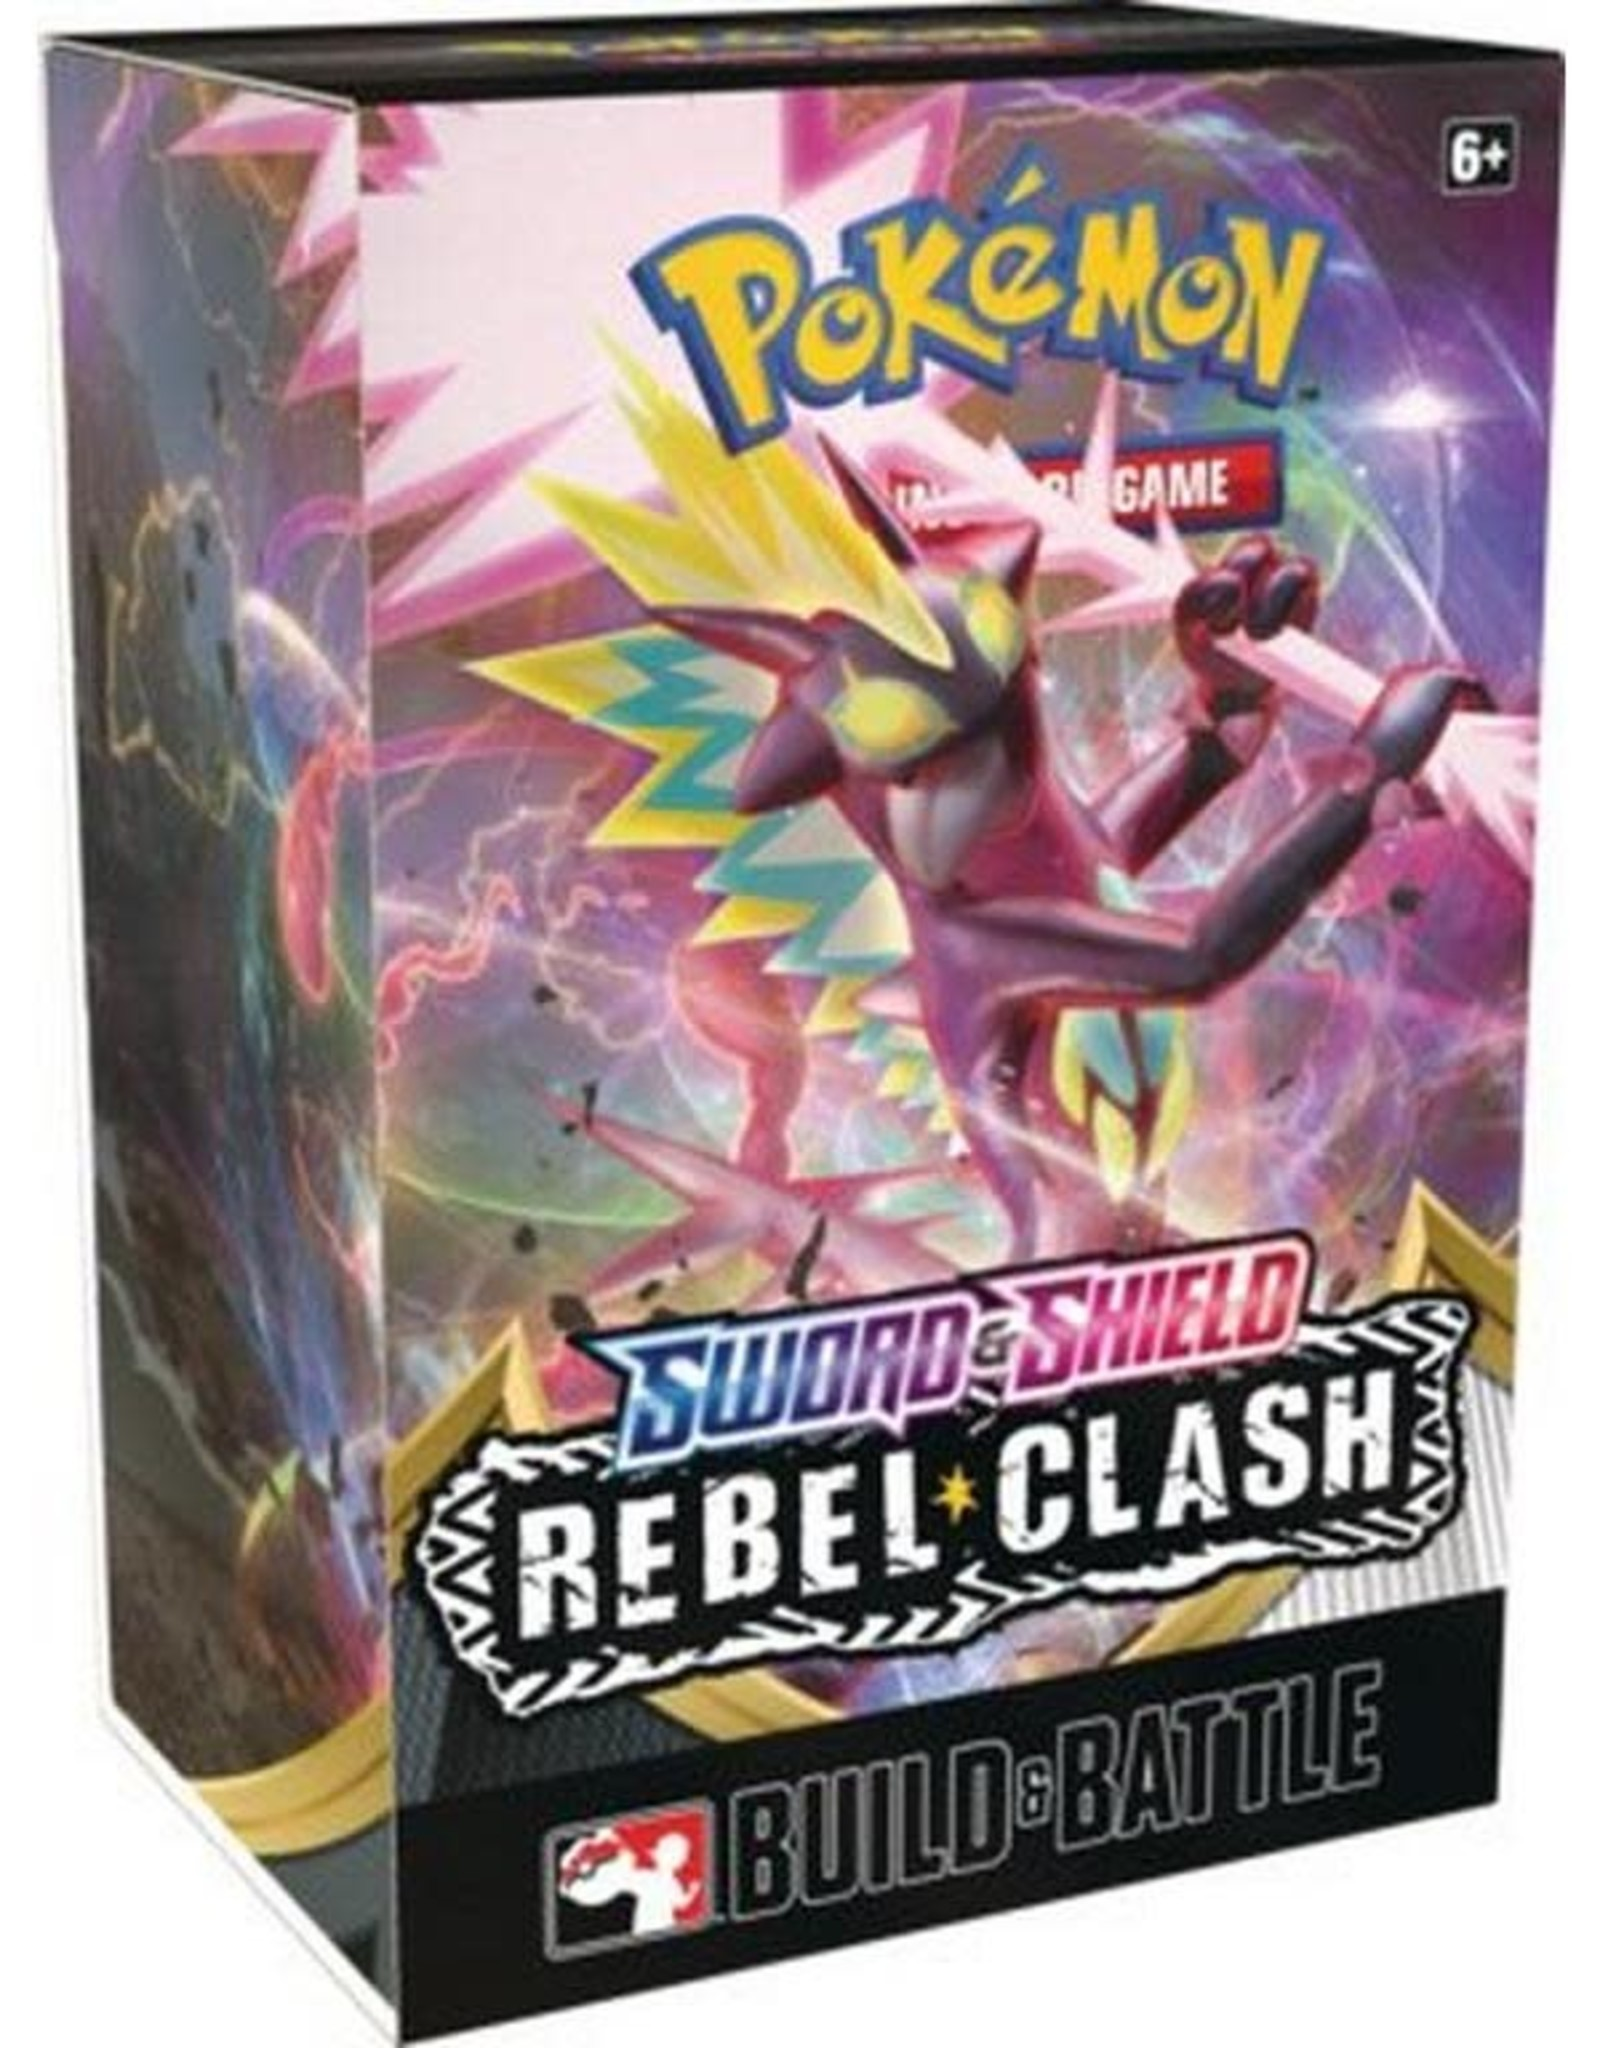 Pokemon Rebel Clash Sword & Shield Build and Battle Kit